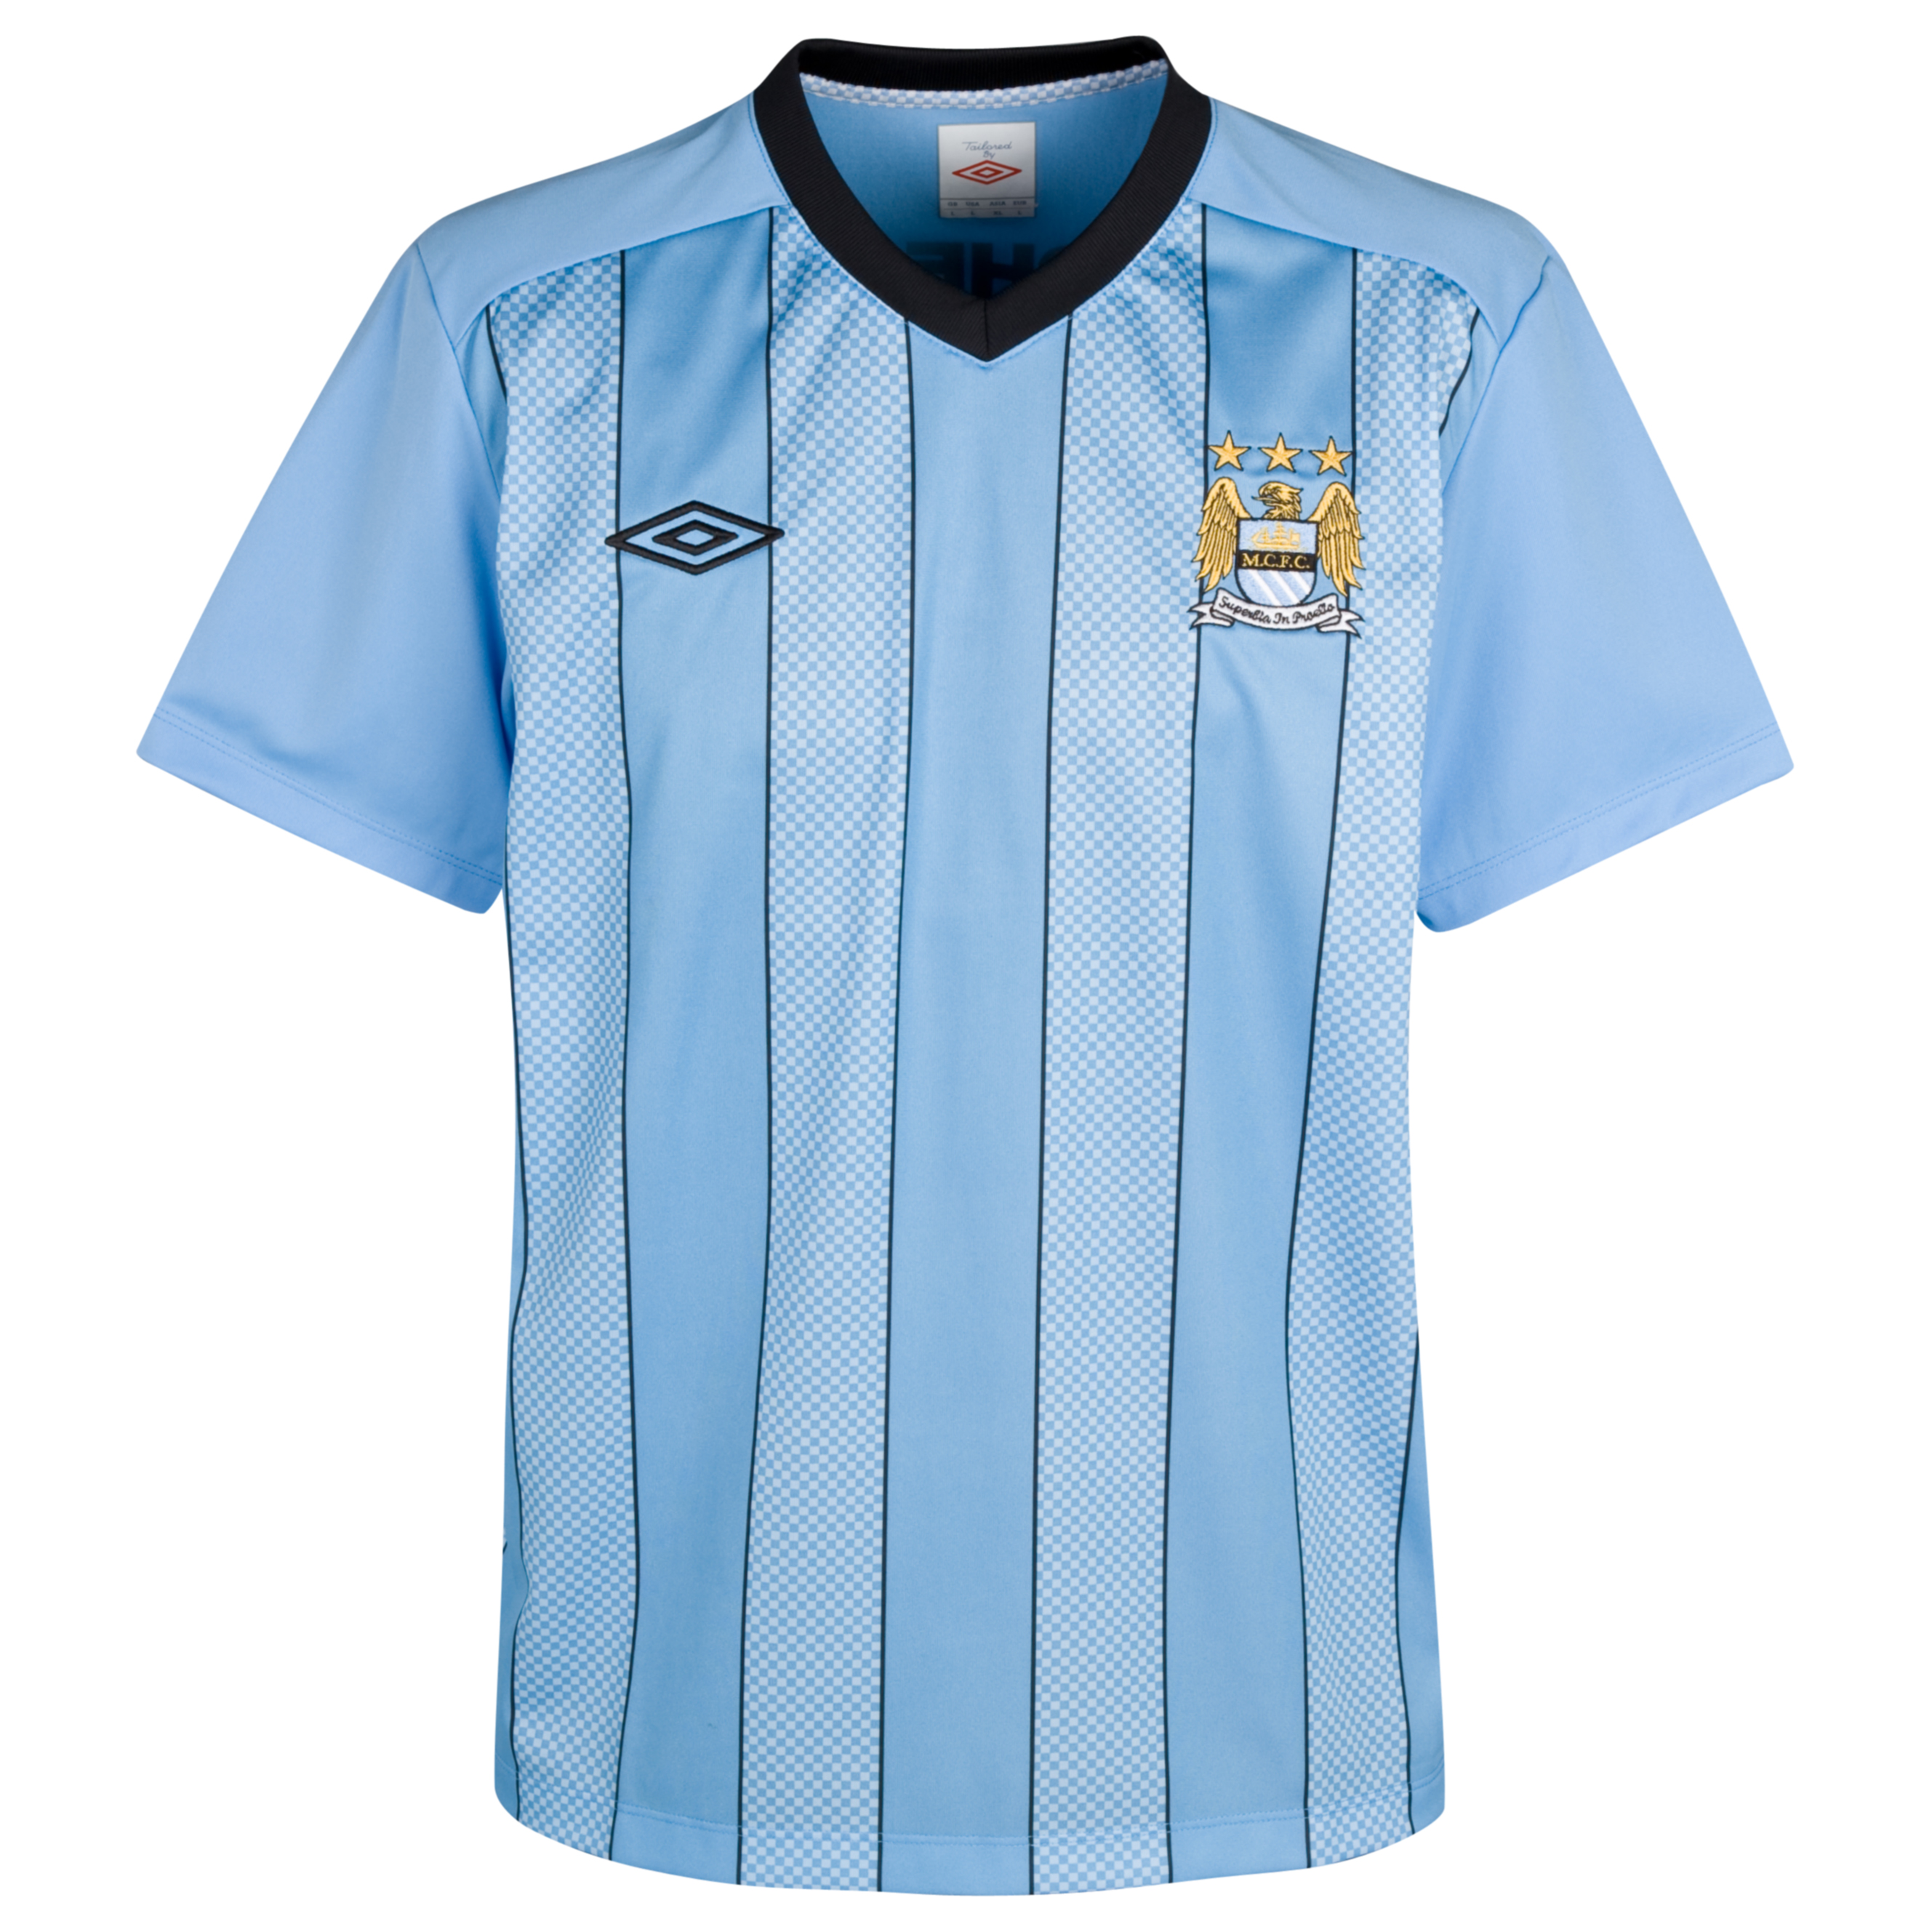 Manchester City Euro Training Short sleeve Jersey - Vista Blue/Black